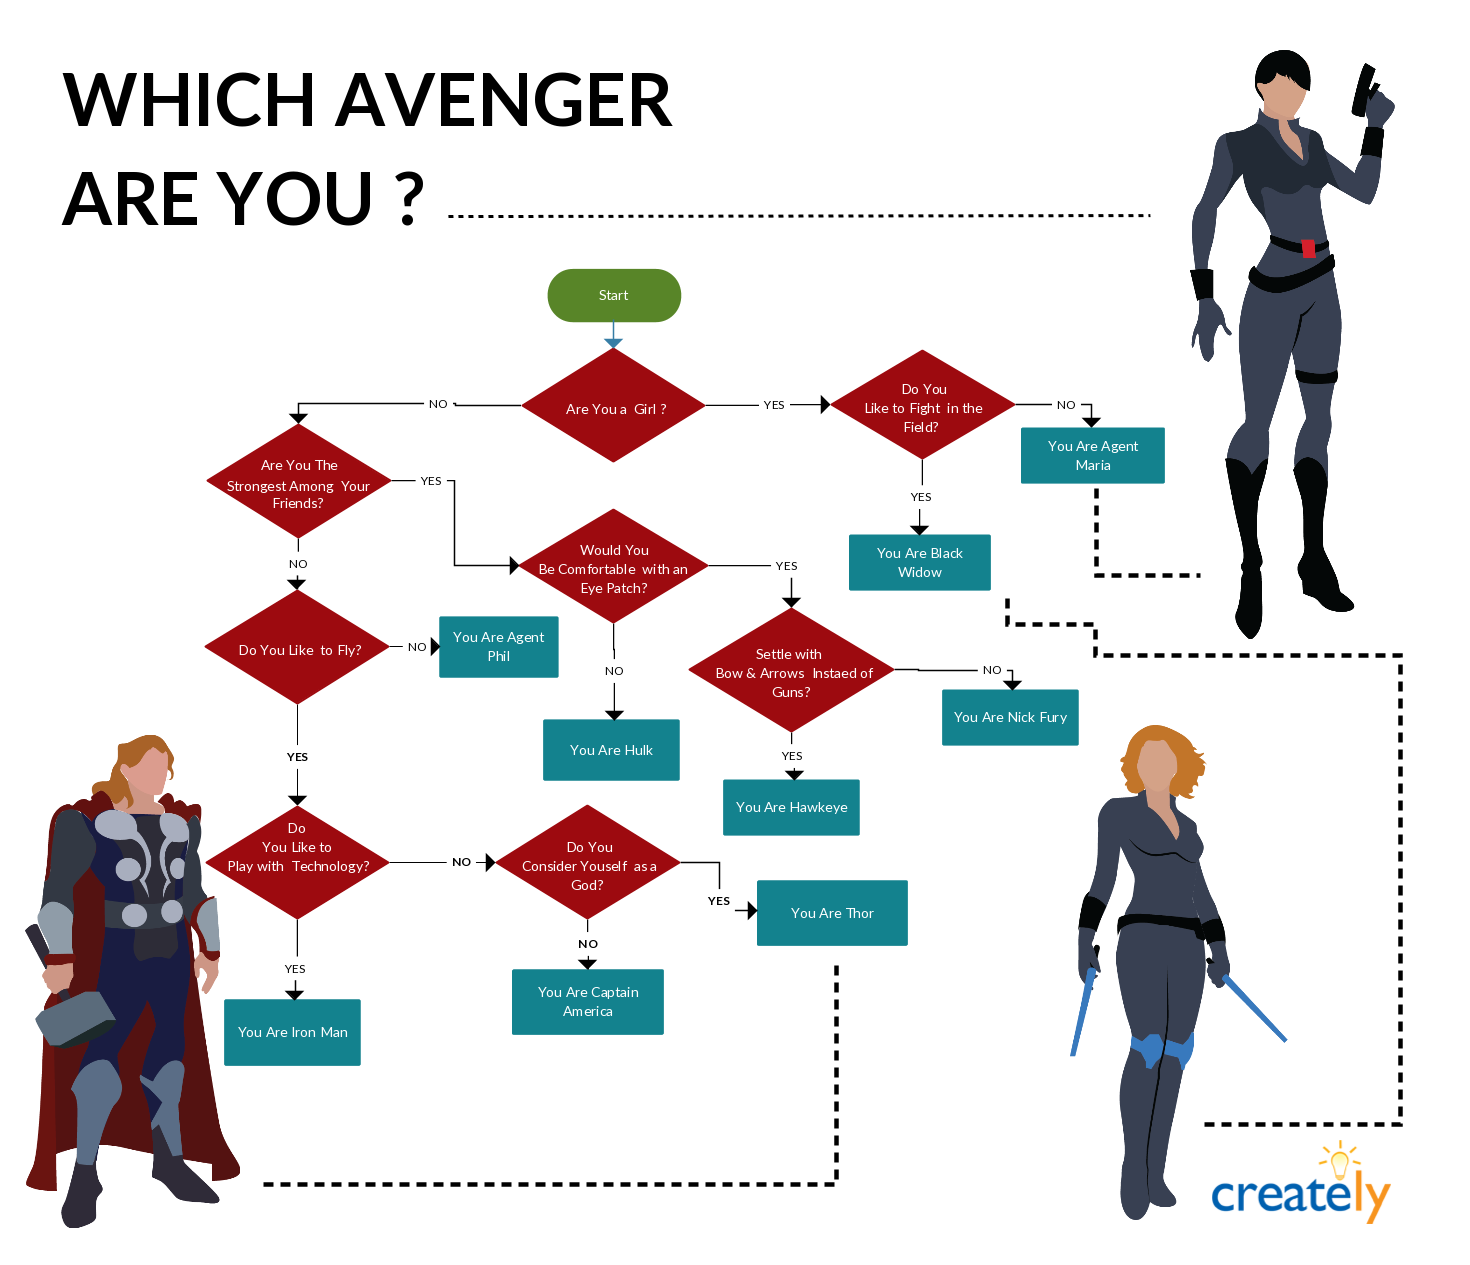 Avengers flowchart which avenger are you follow the flowchart flow chart example 10 interesting flowchart examples for students sample flowcharts and templates sample flow charts flowchart guide complete flowchart nvjuhfo Gallery